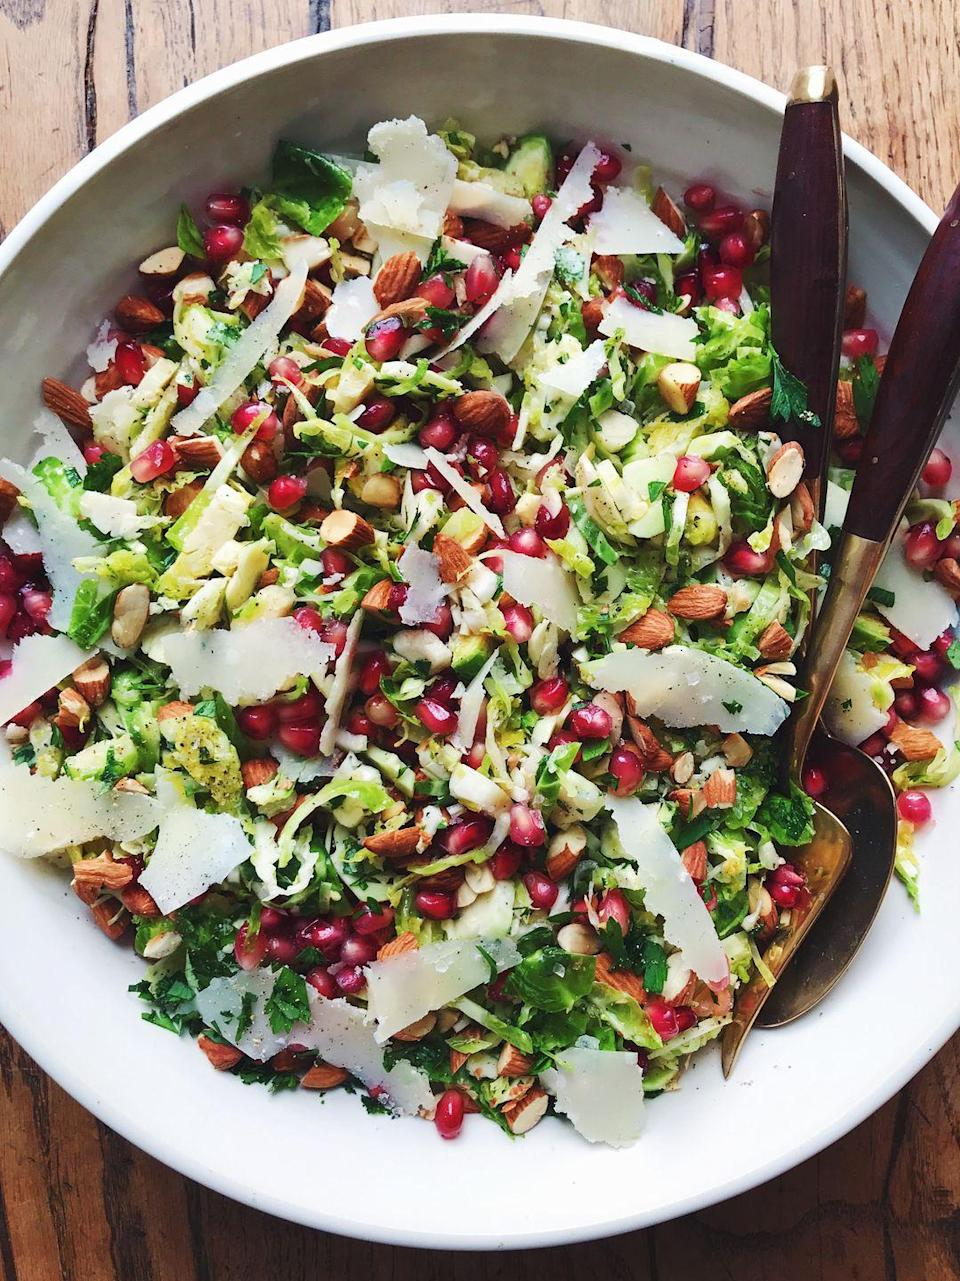 """<p>The tastier way to do a holiday salad.</p><p>Get the recipe from <a href=""""https://www.delish.com/cooking/recipe-ideas/a21085670/brussels-sprouts-salad-recipe/"""" rel=""""nofollow noopener"""" target=""""_blank"""" data-ylk=""""slk:Delish"""" class=""""link rapid-noclick-resp"""">Delish</a>.</p>"""